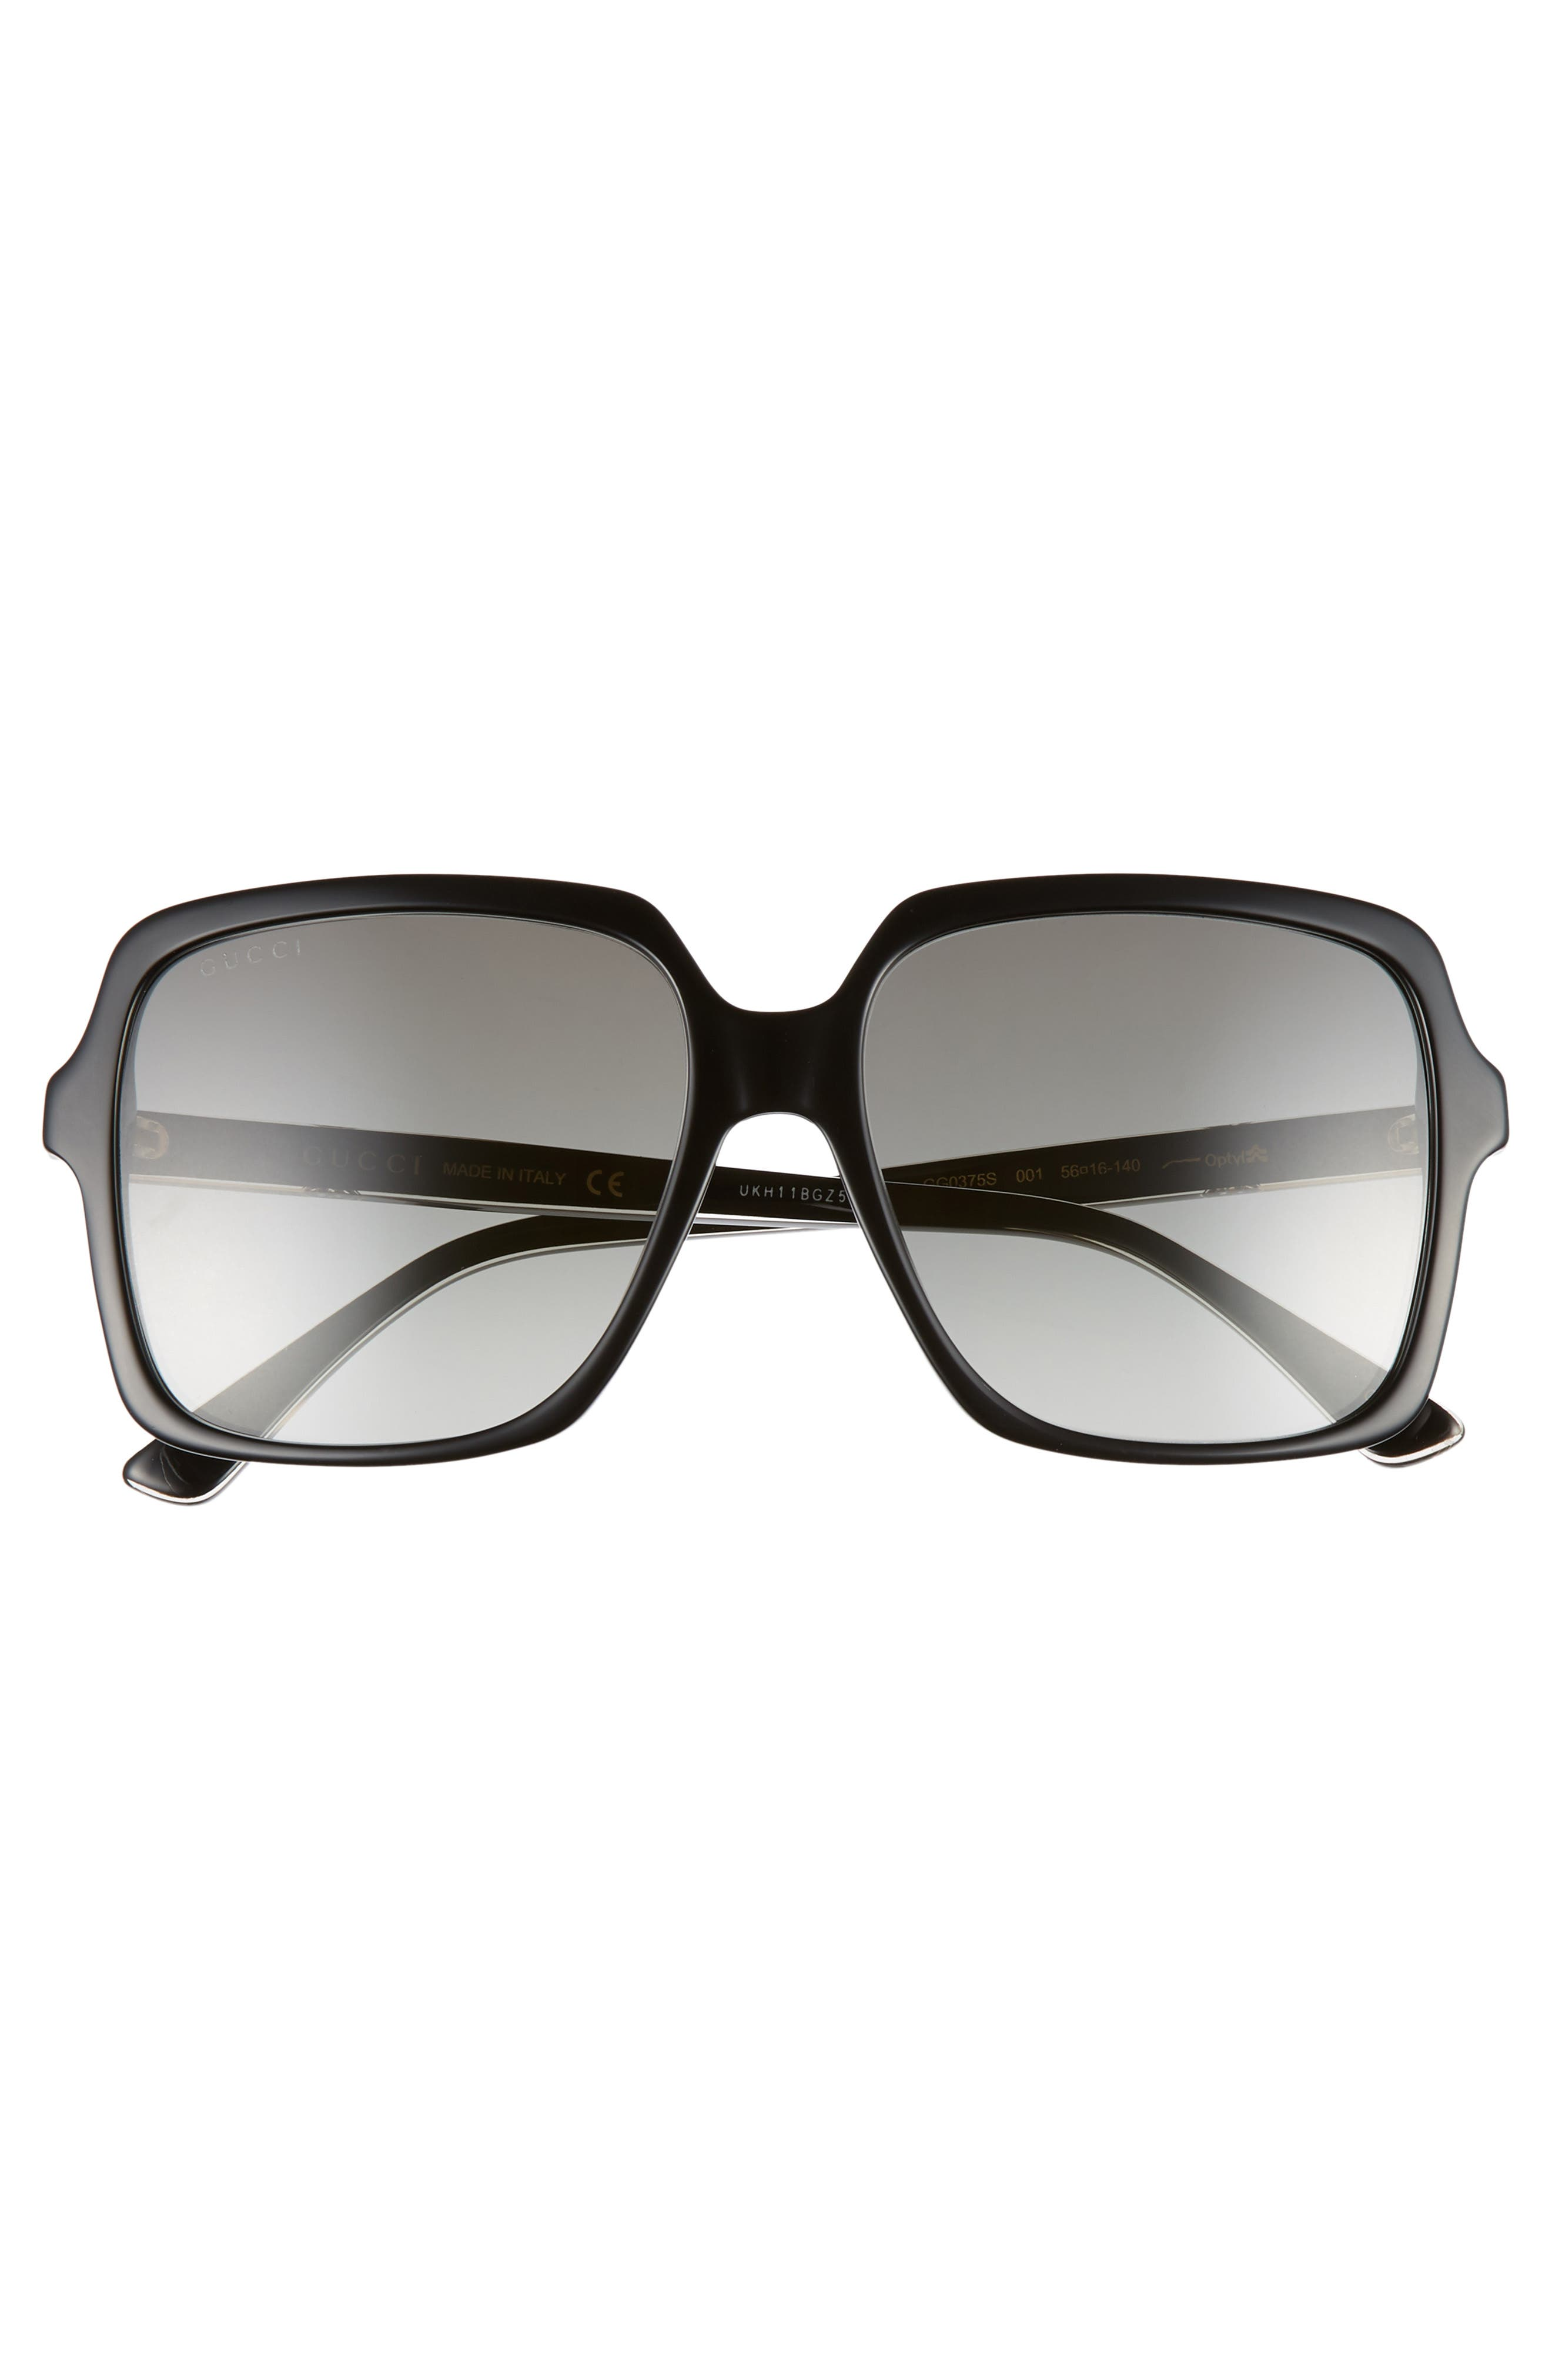 56mm Square Sunglasses,                             Alternate thumbnail 3, color,                             BLACK/ CRYSTAL/ GREY GRADIENT